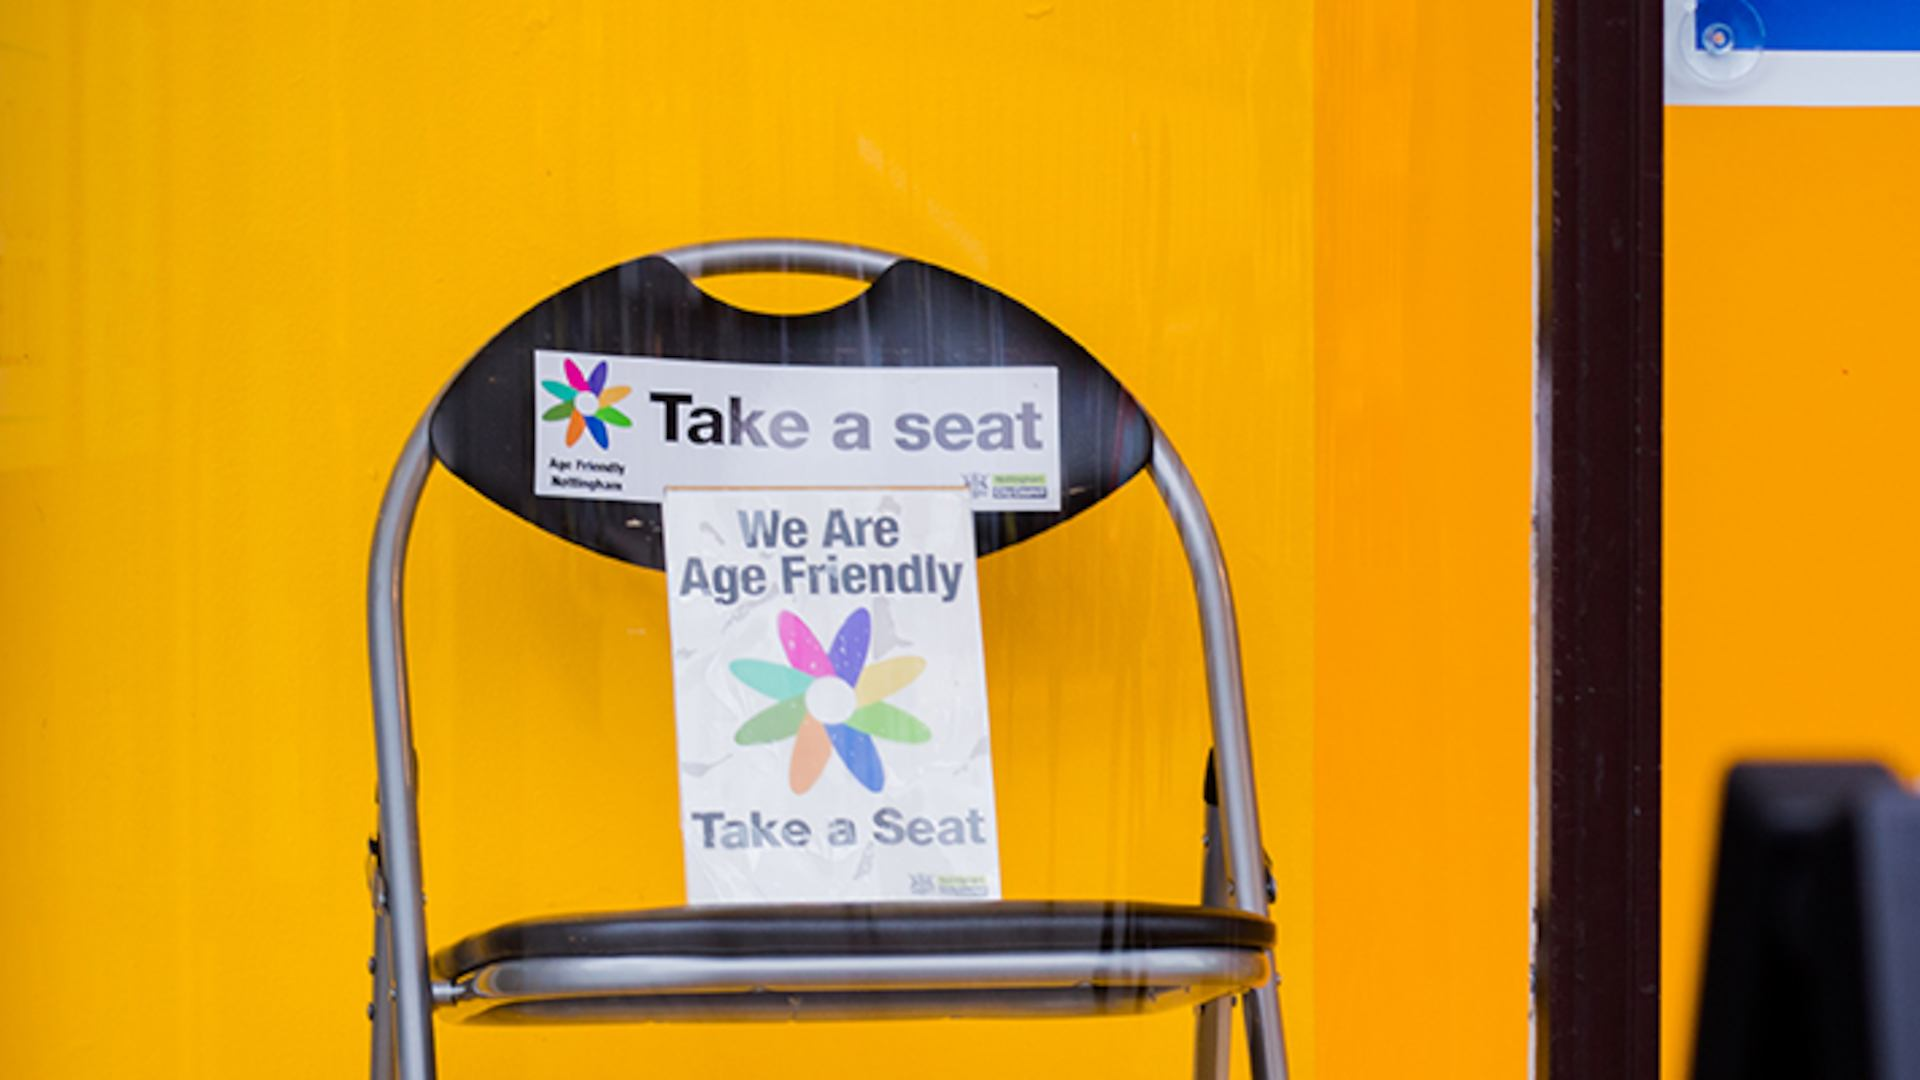 Chair with take a seat sign